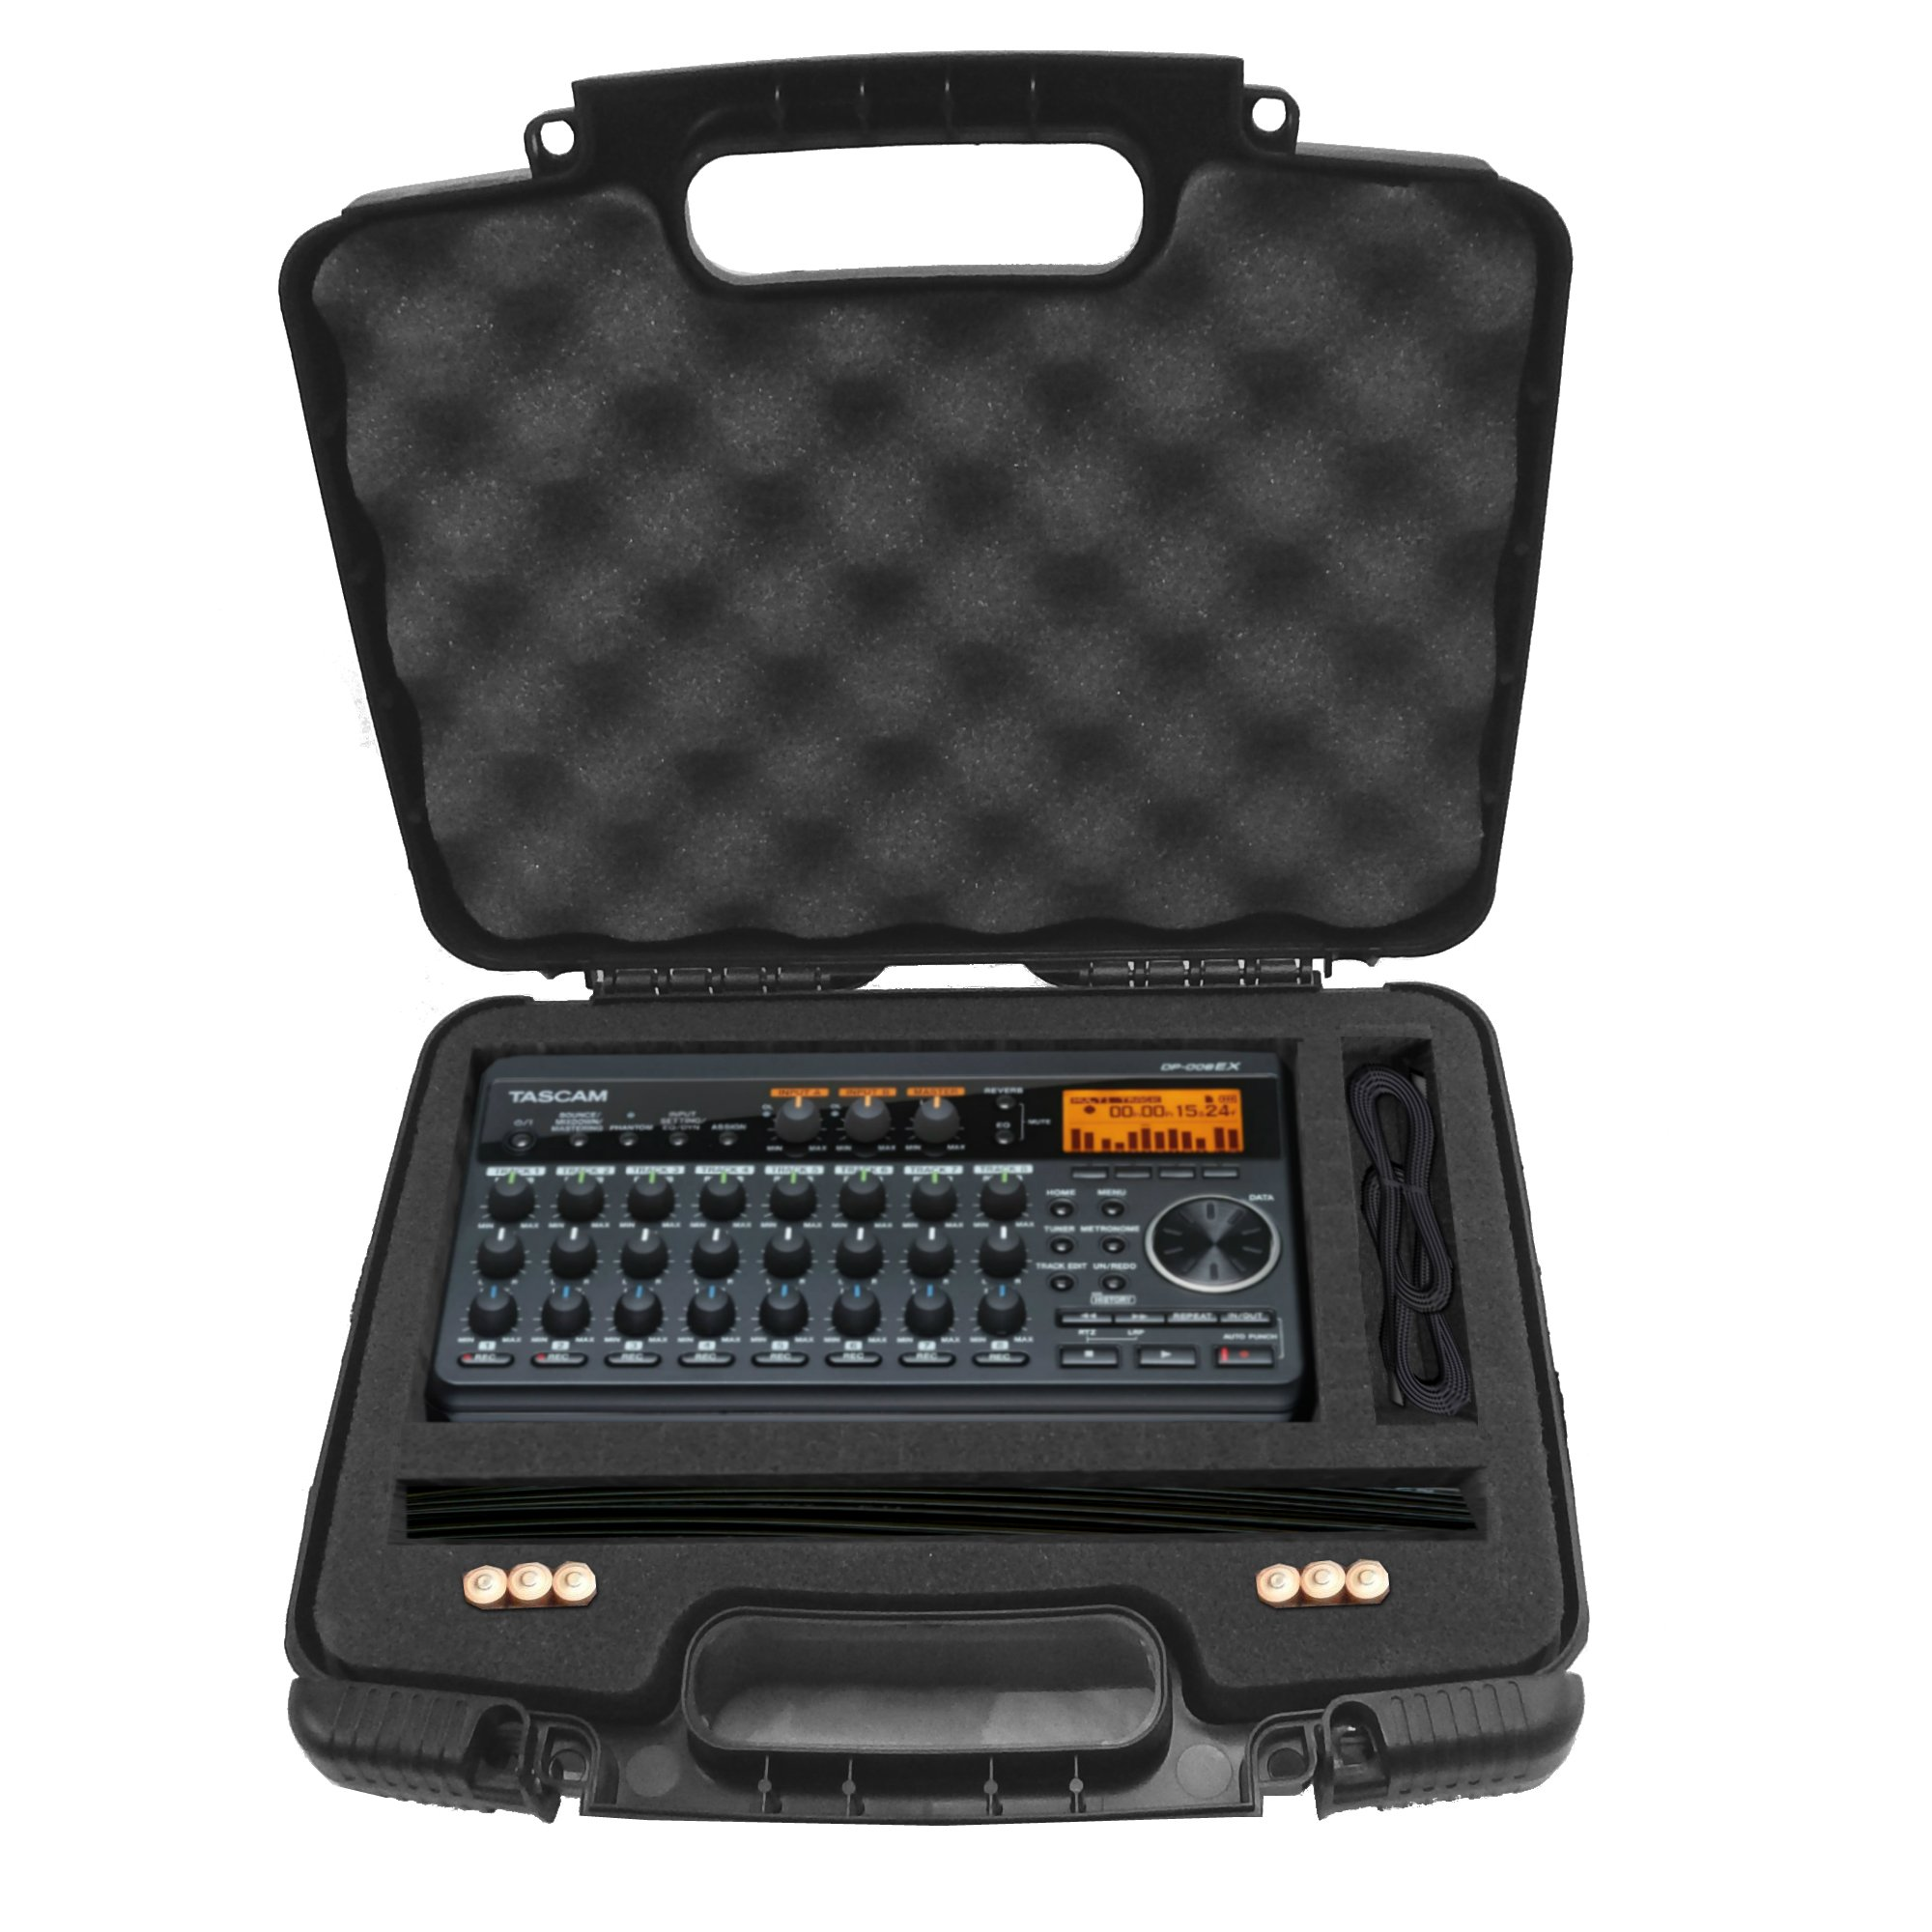 TOUGH Recorder and Accessory Hard Case w/ Dense Foam for TASCAM Dp-008ex , DP-006 Digital Pocket Studio Multi-Track Recorders , Adapter , Cables and Charger